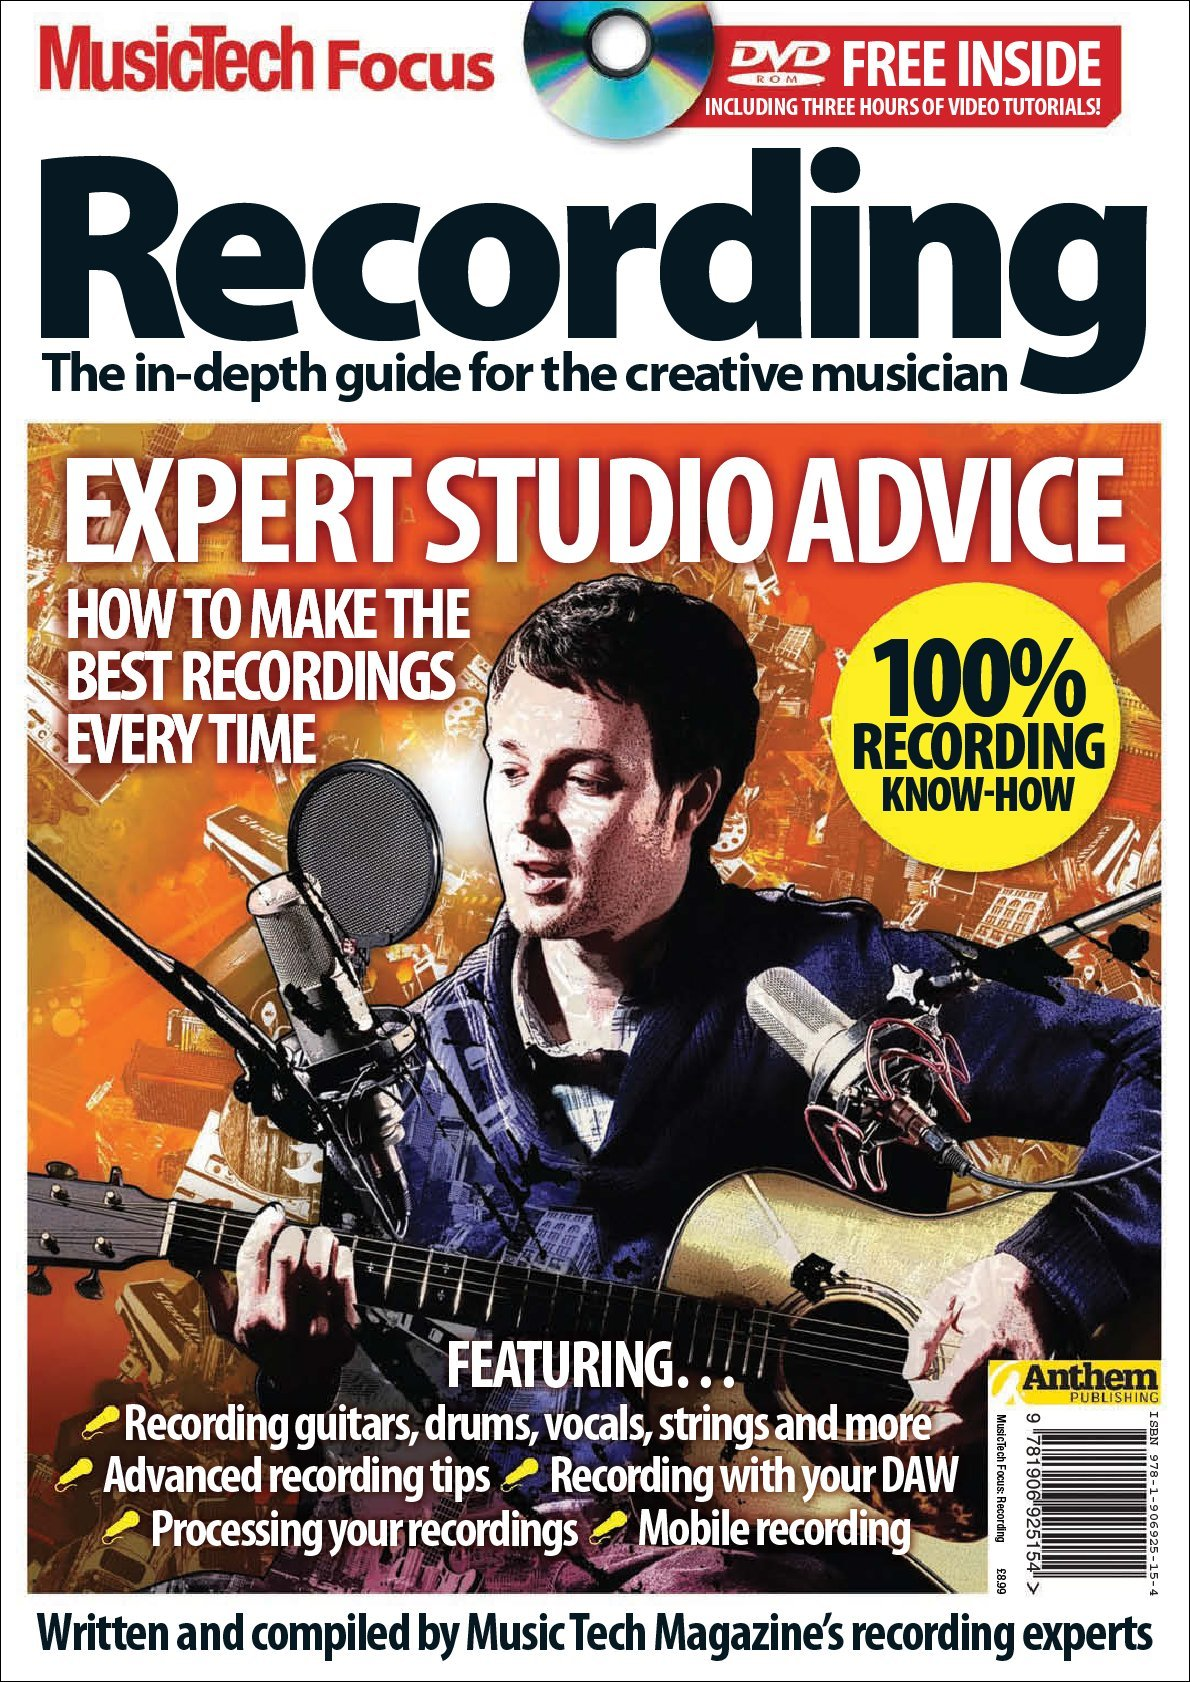 Music Tech Focus Reason 5 and record Digital